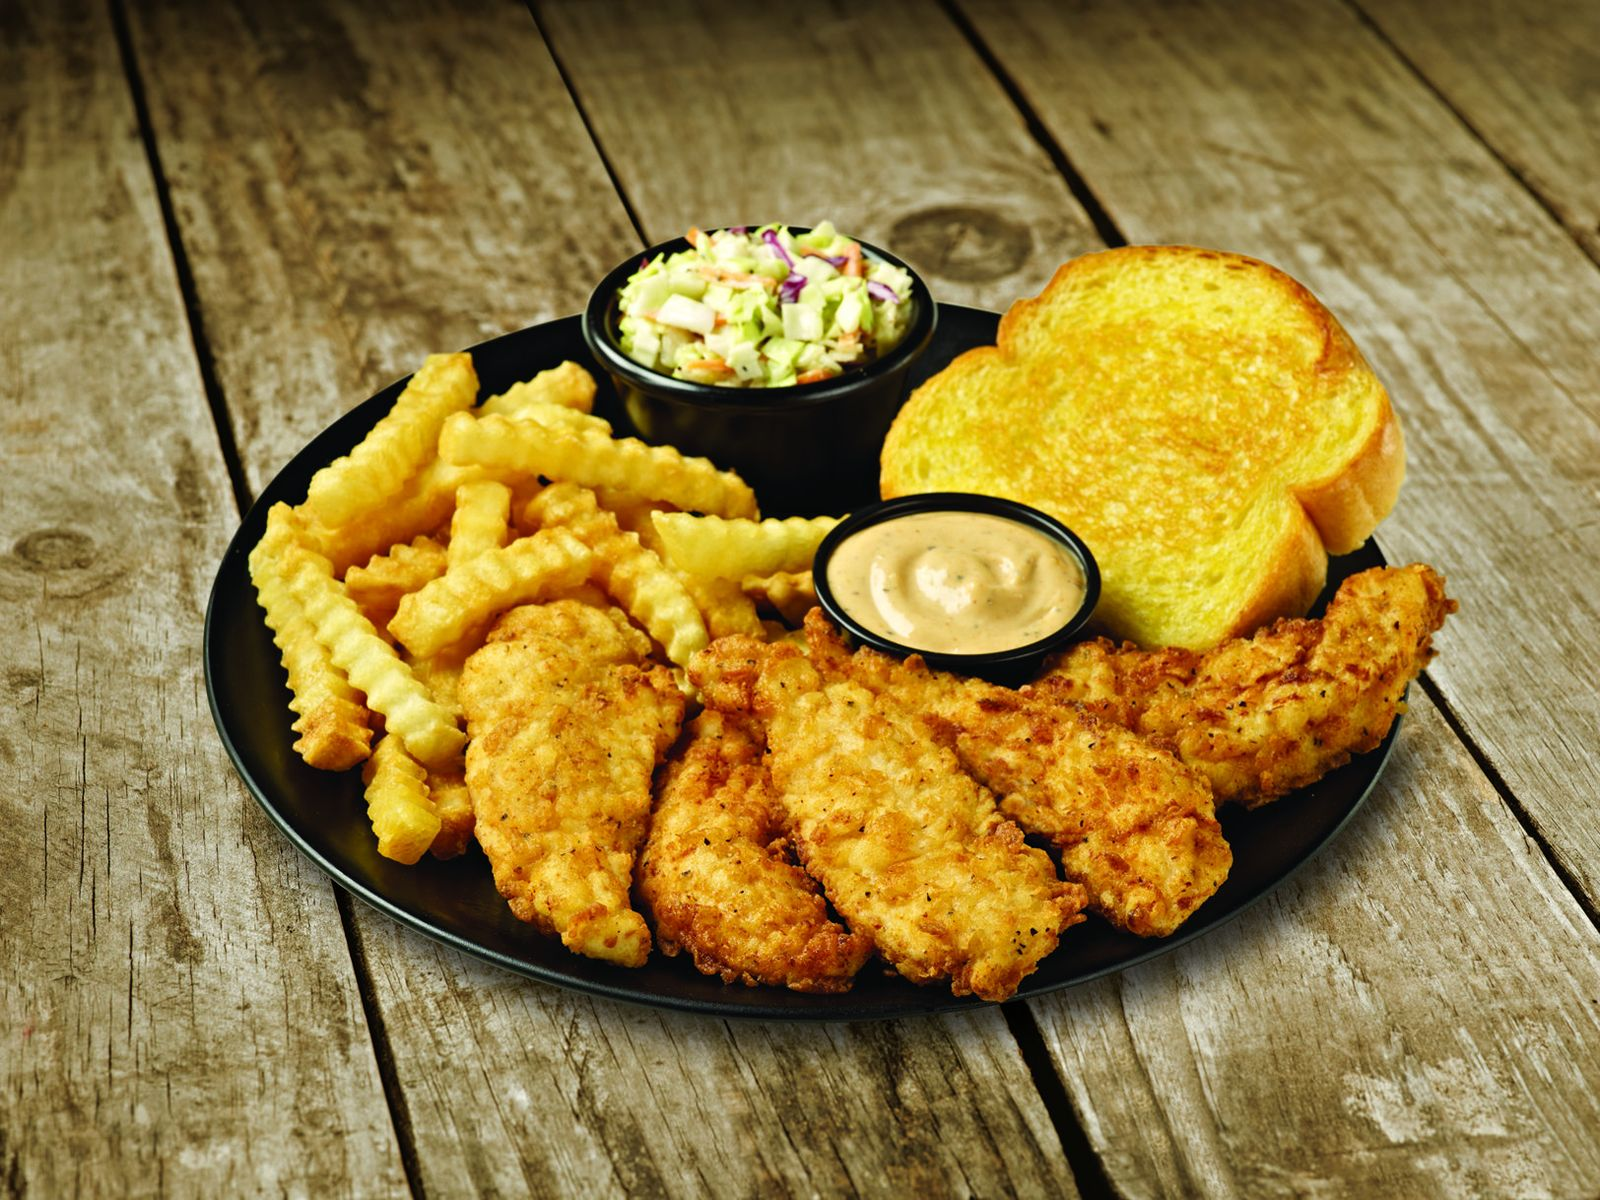 Huey Magoo's Announces Grand Opening In Jacksonville Beach, Florida On Wednesday, October 13